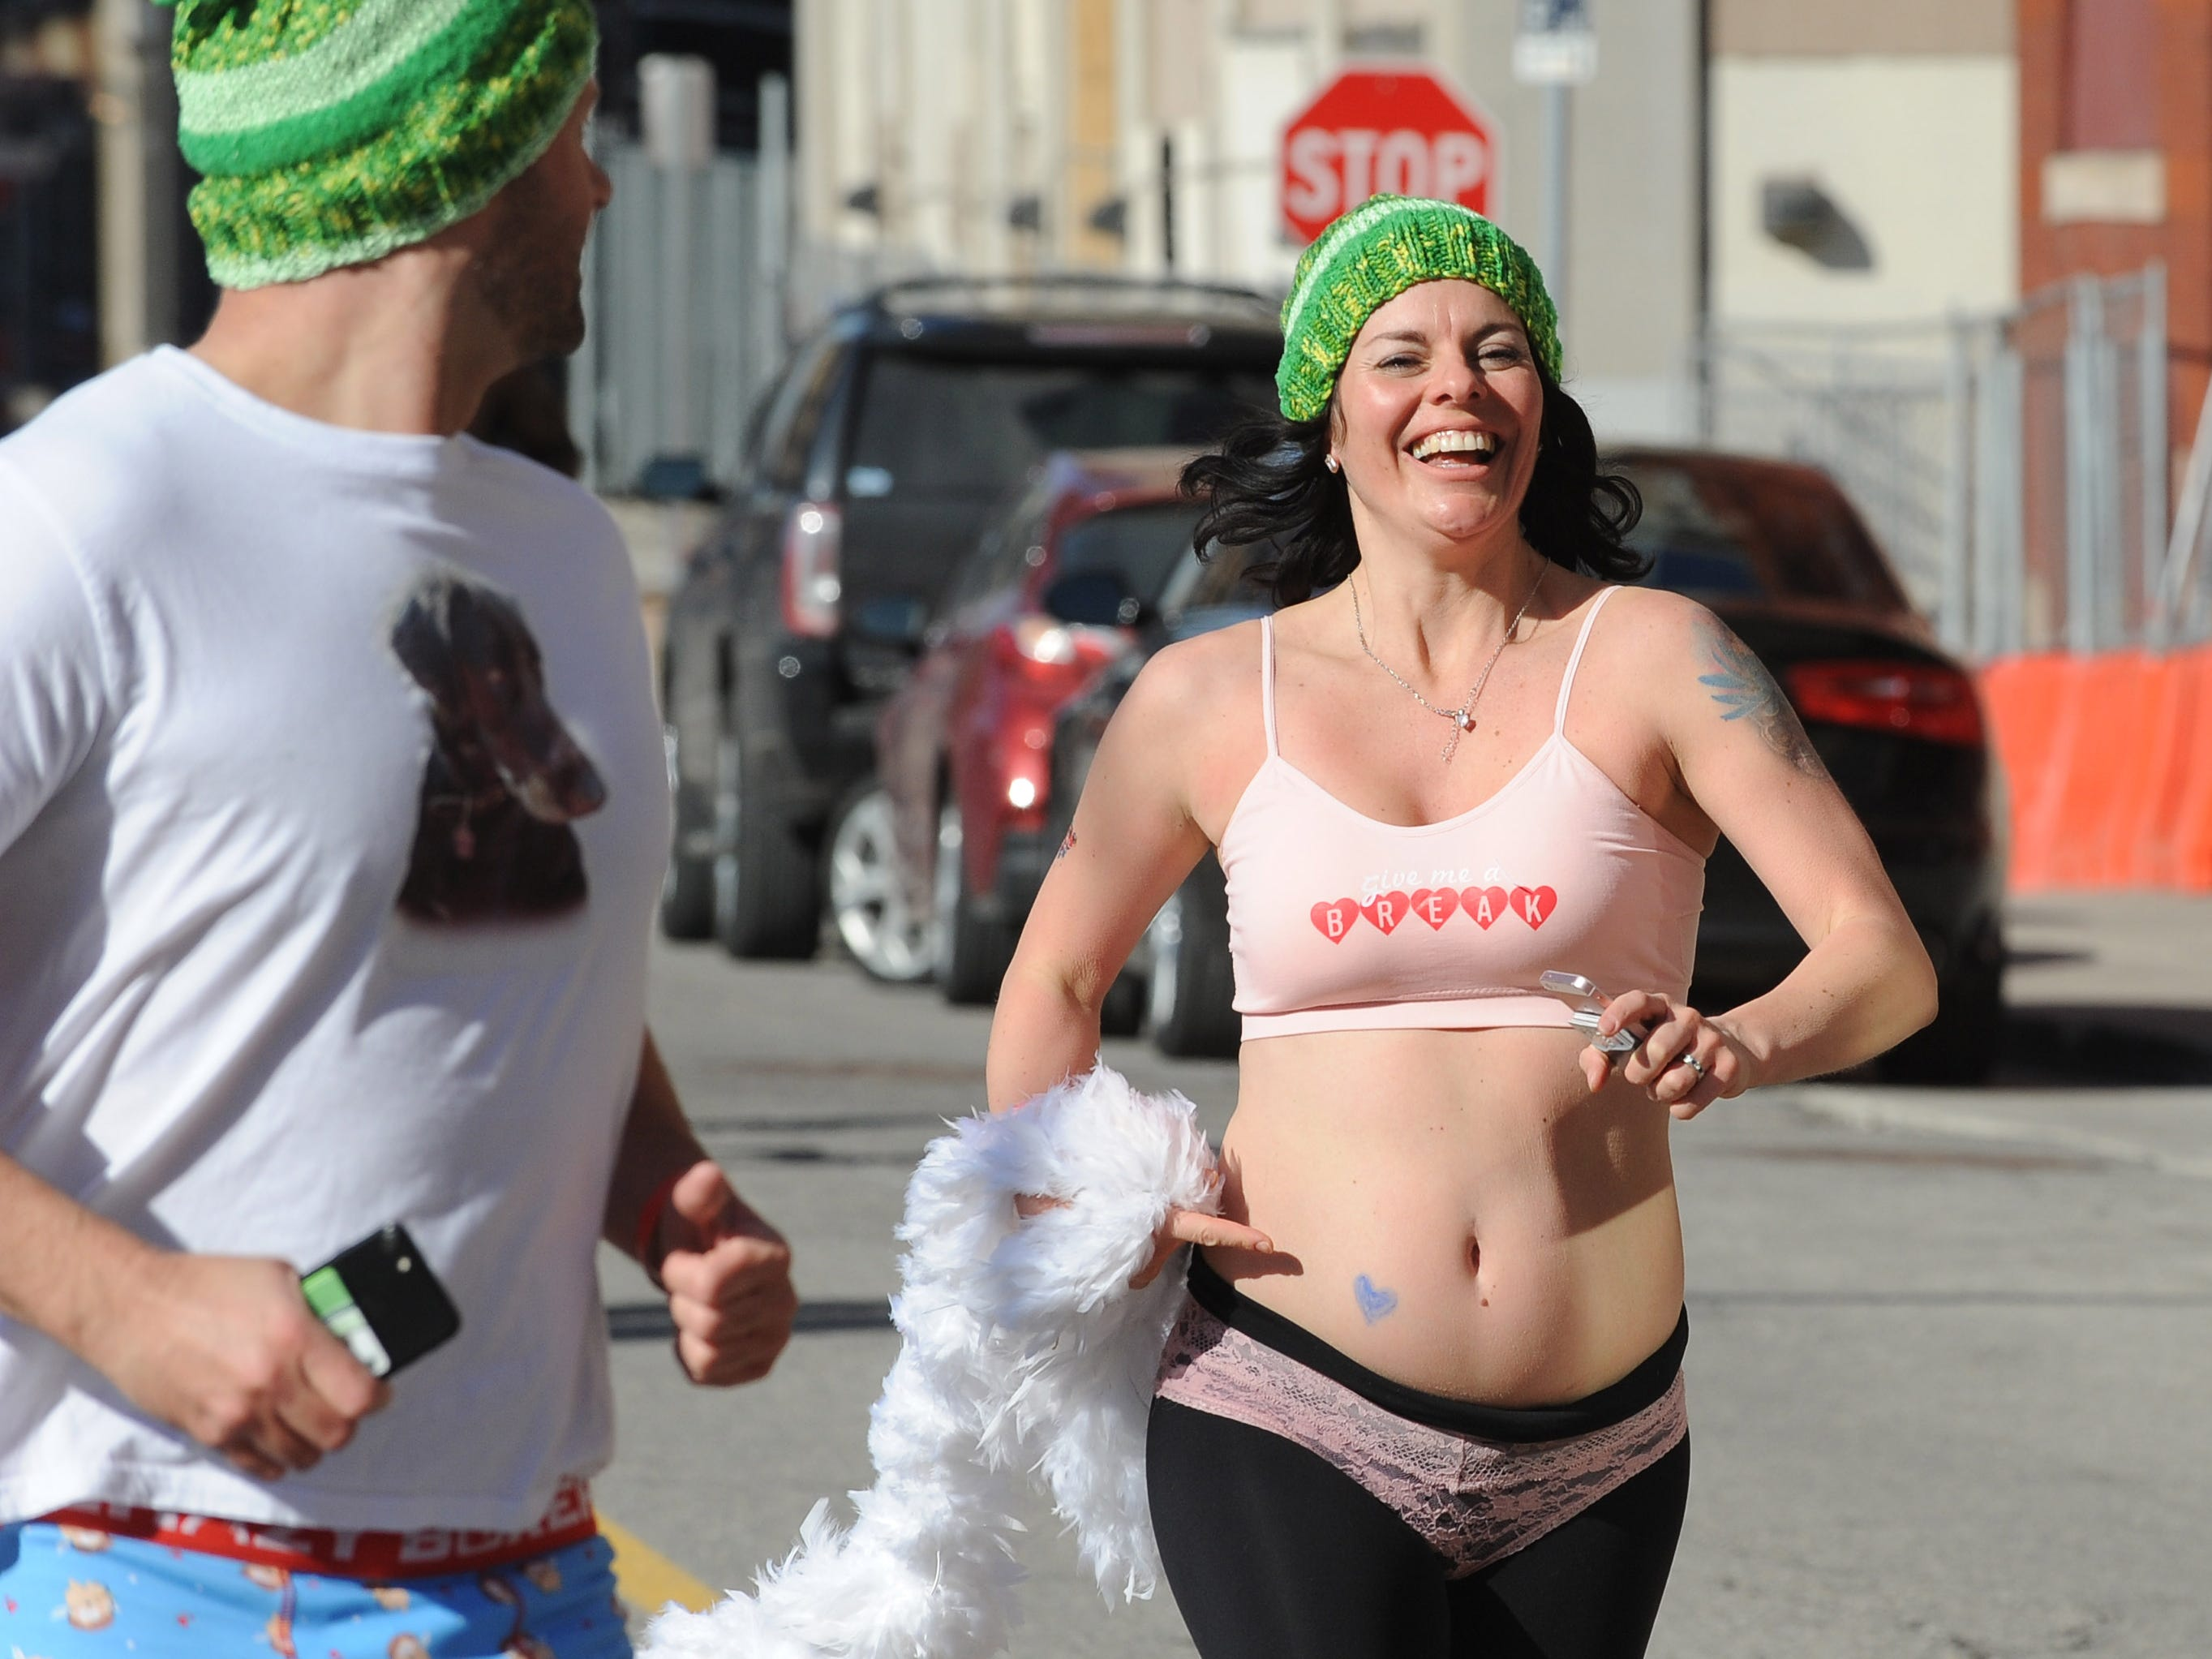 Bare skin and matching green hats were seen at Cupid's Undie Run on Saturday, February 9, 2019.